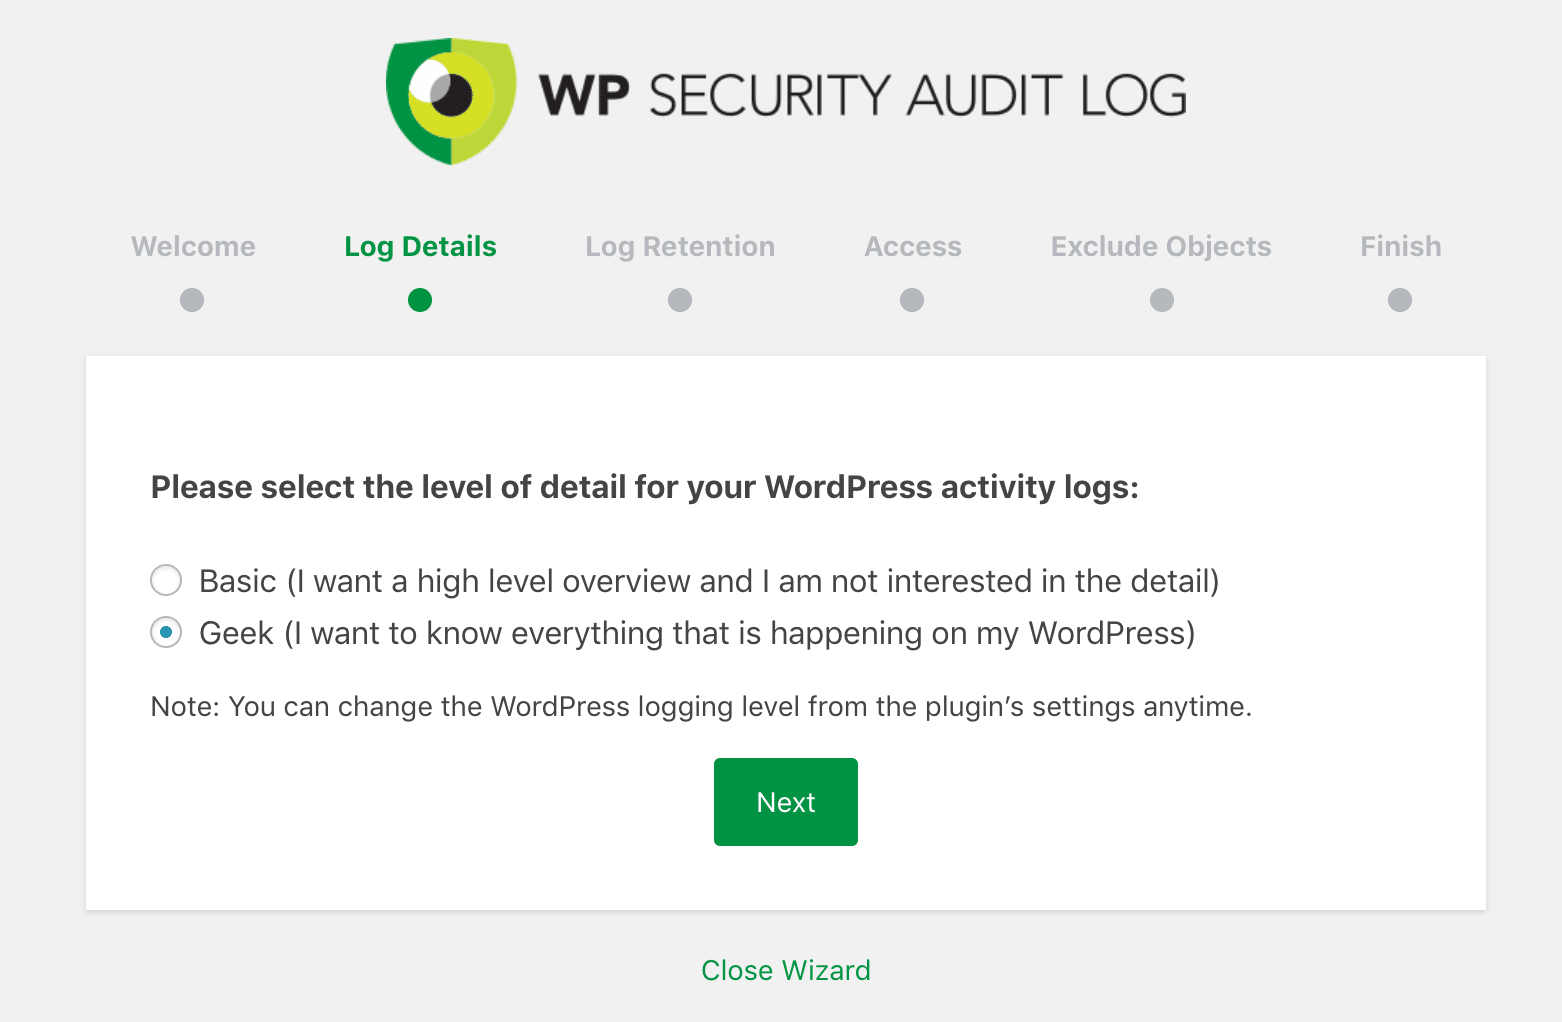 WP Security Audit Log configurações geek